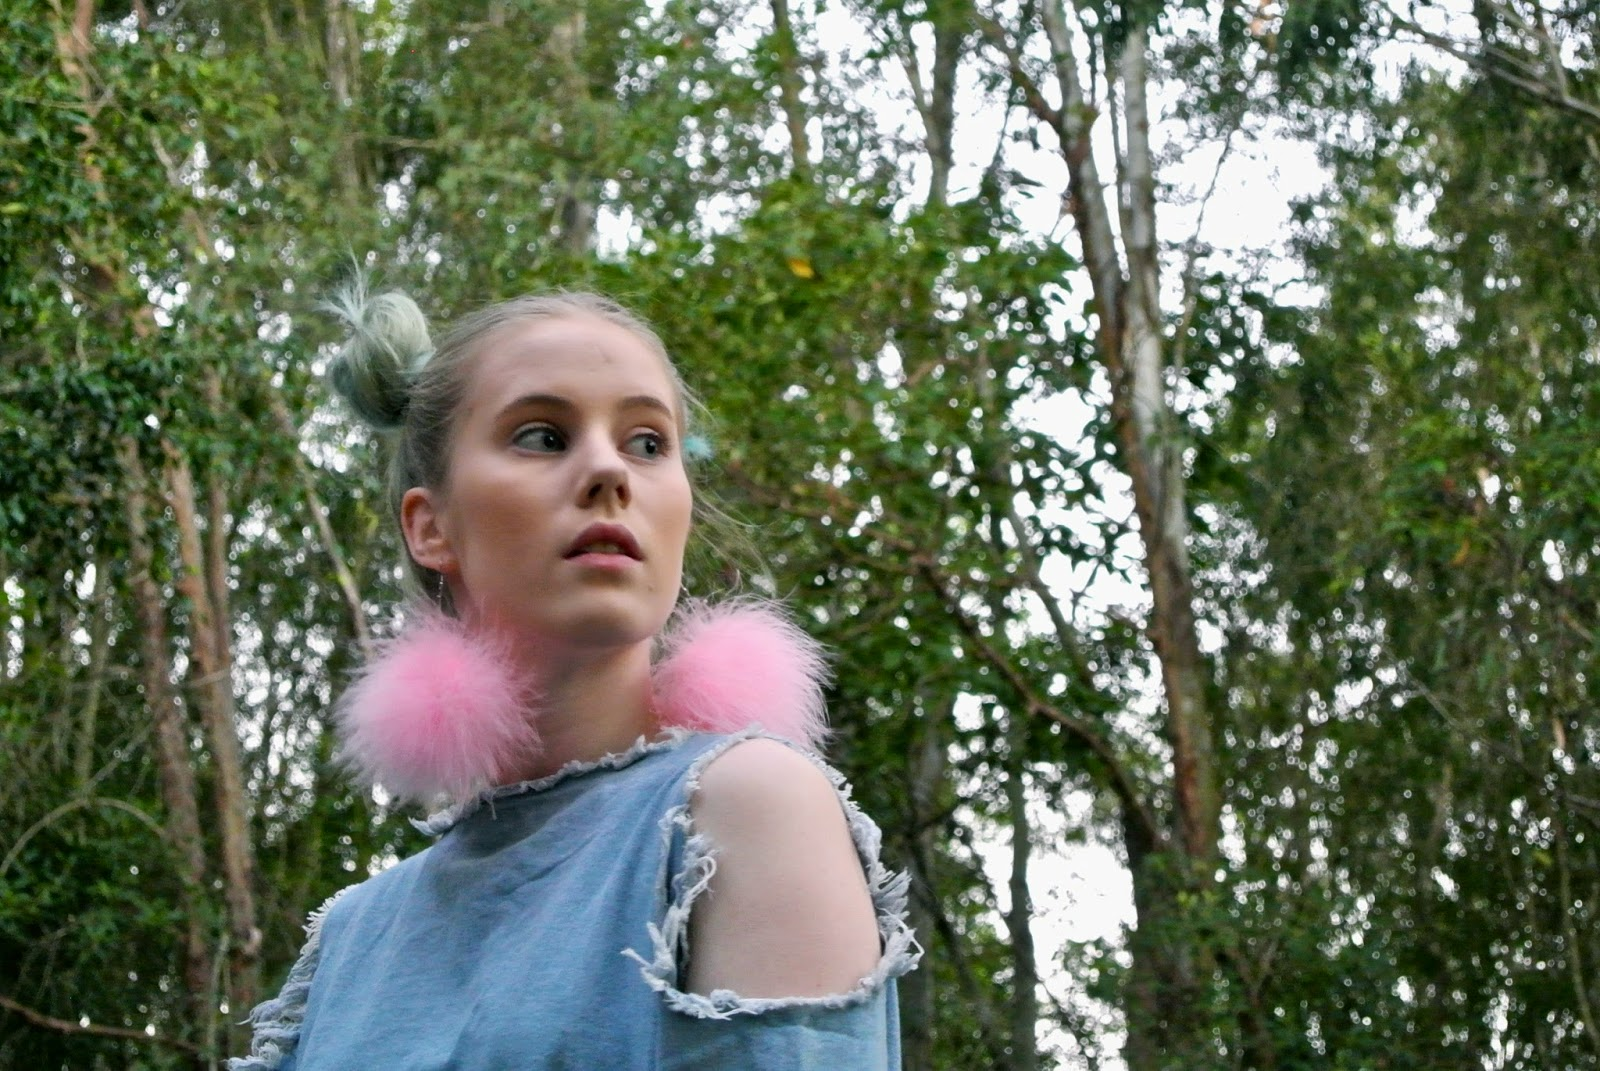 Pip O'Sullivan, Philippa O'Sullivan, outside is colours, outsideiscolours, fashion blog, OOTD, evan-evina, denim dress, distressed denim, frayed denim dress, fashion blogger outfit, marabou feather earrings, pom pom earrings, DIY poms earrings, pink fluffy earrings